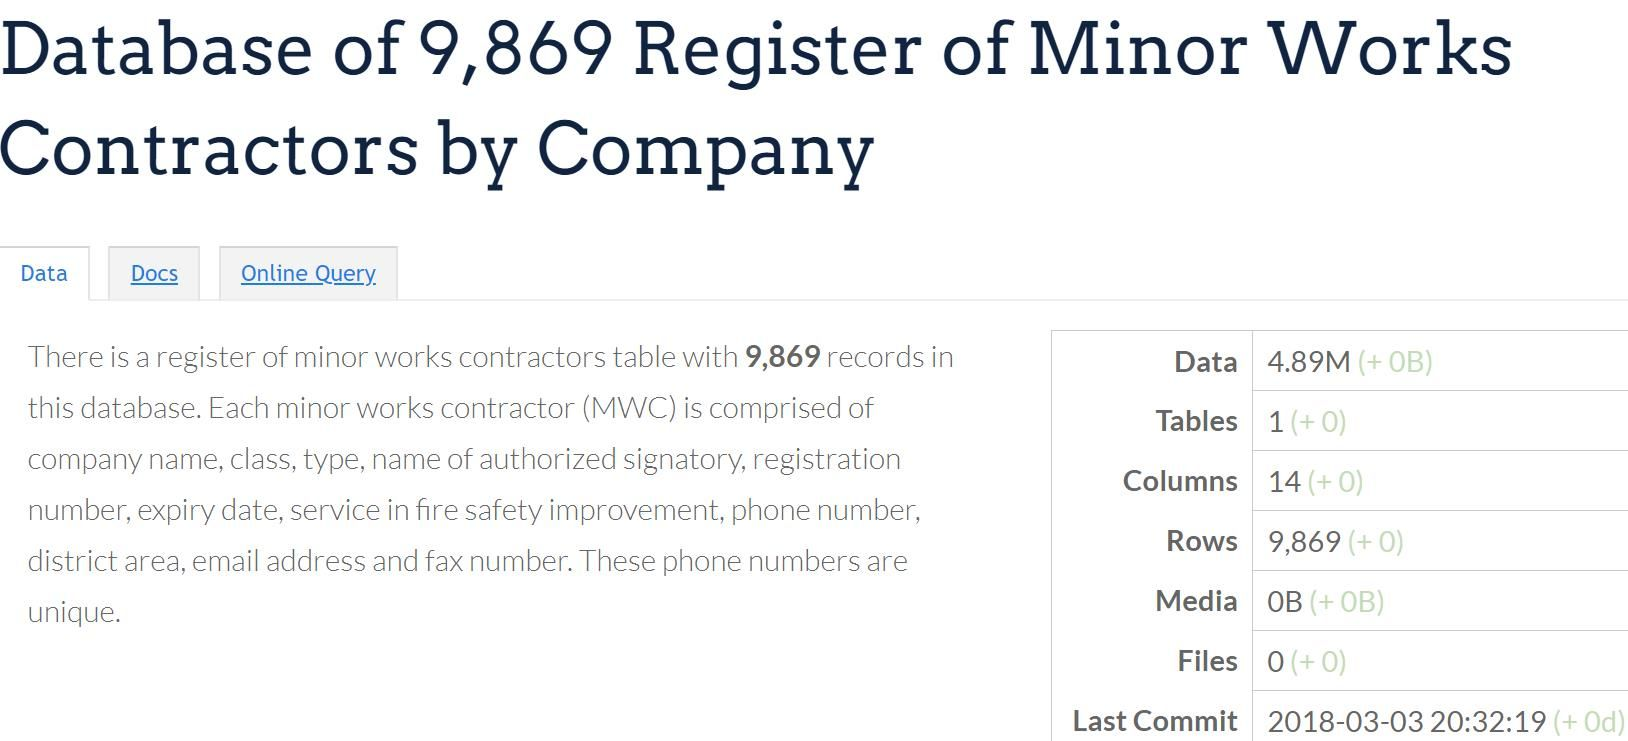 9,869 Register of Minor Works Contractors There is a